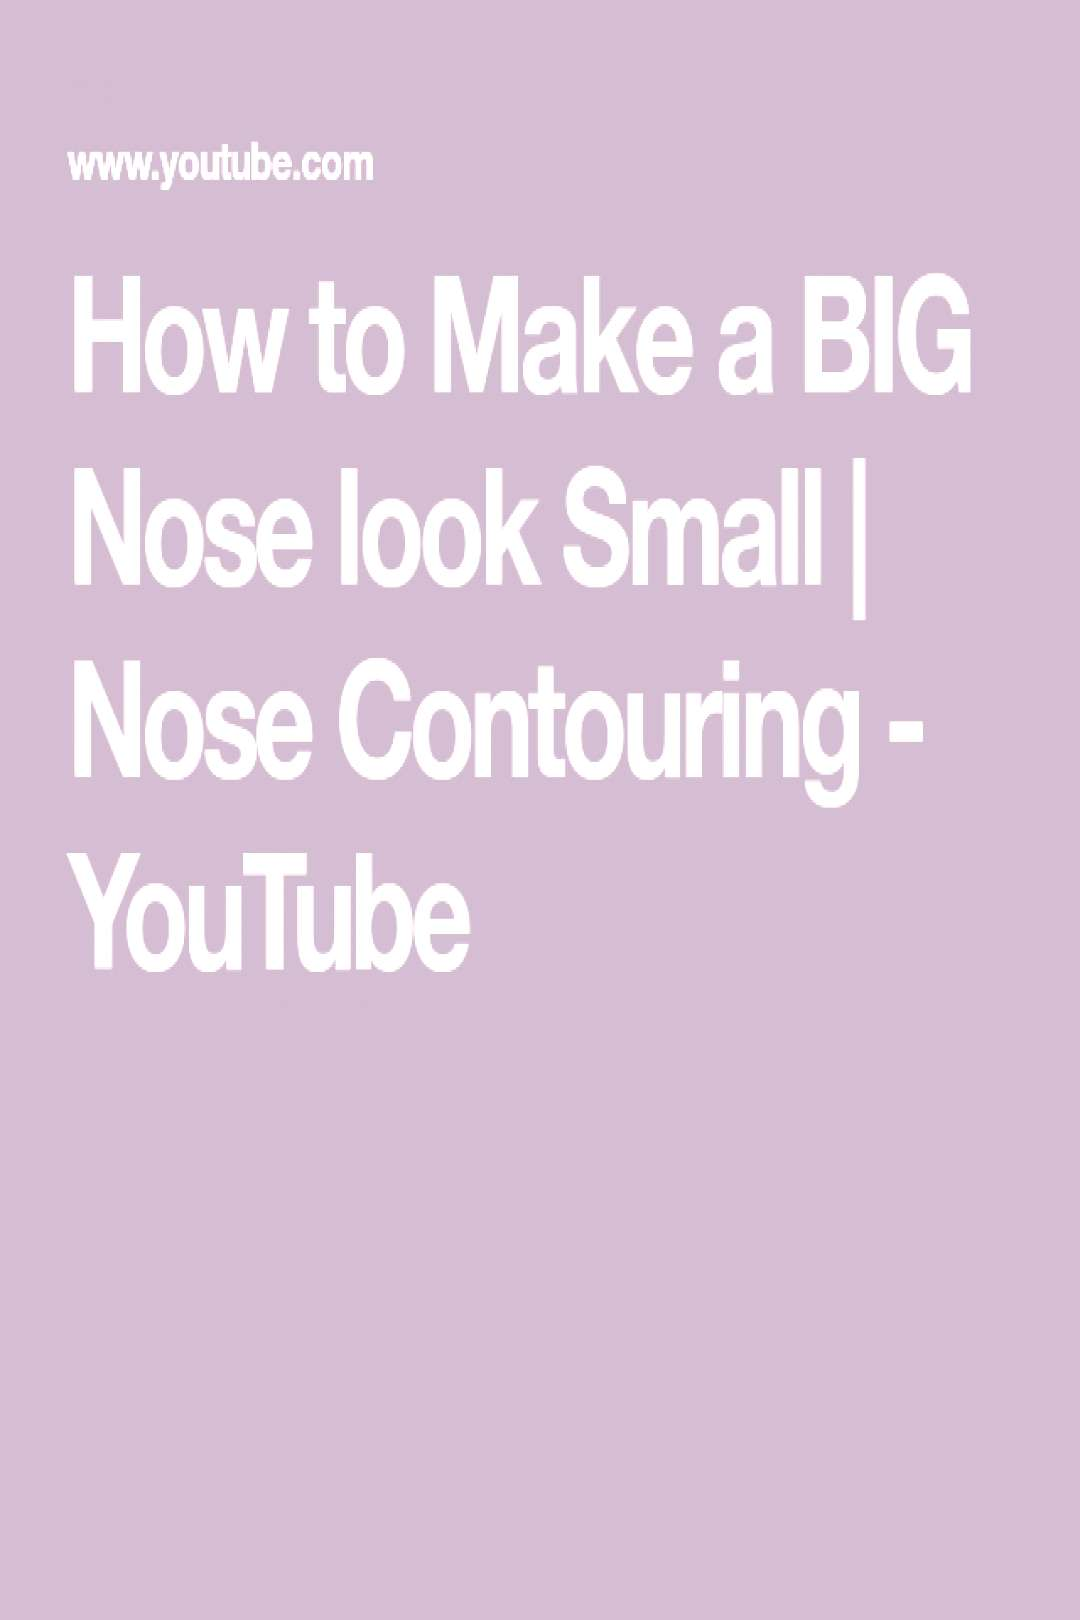 How to Make a BIG Nose look Small   Nose Contouring - How to Make a BIG Nose look Small   Nose Con